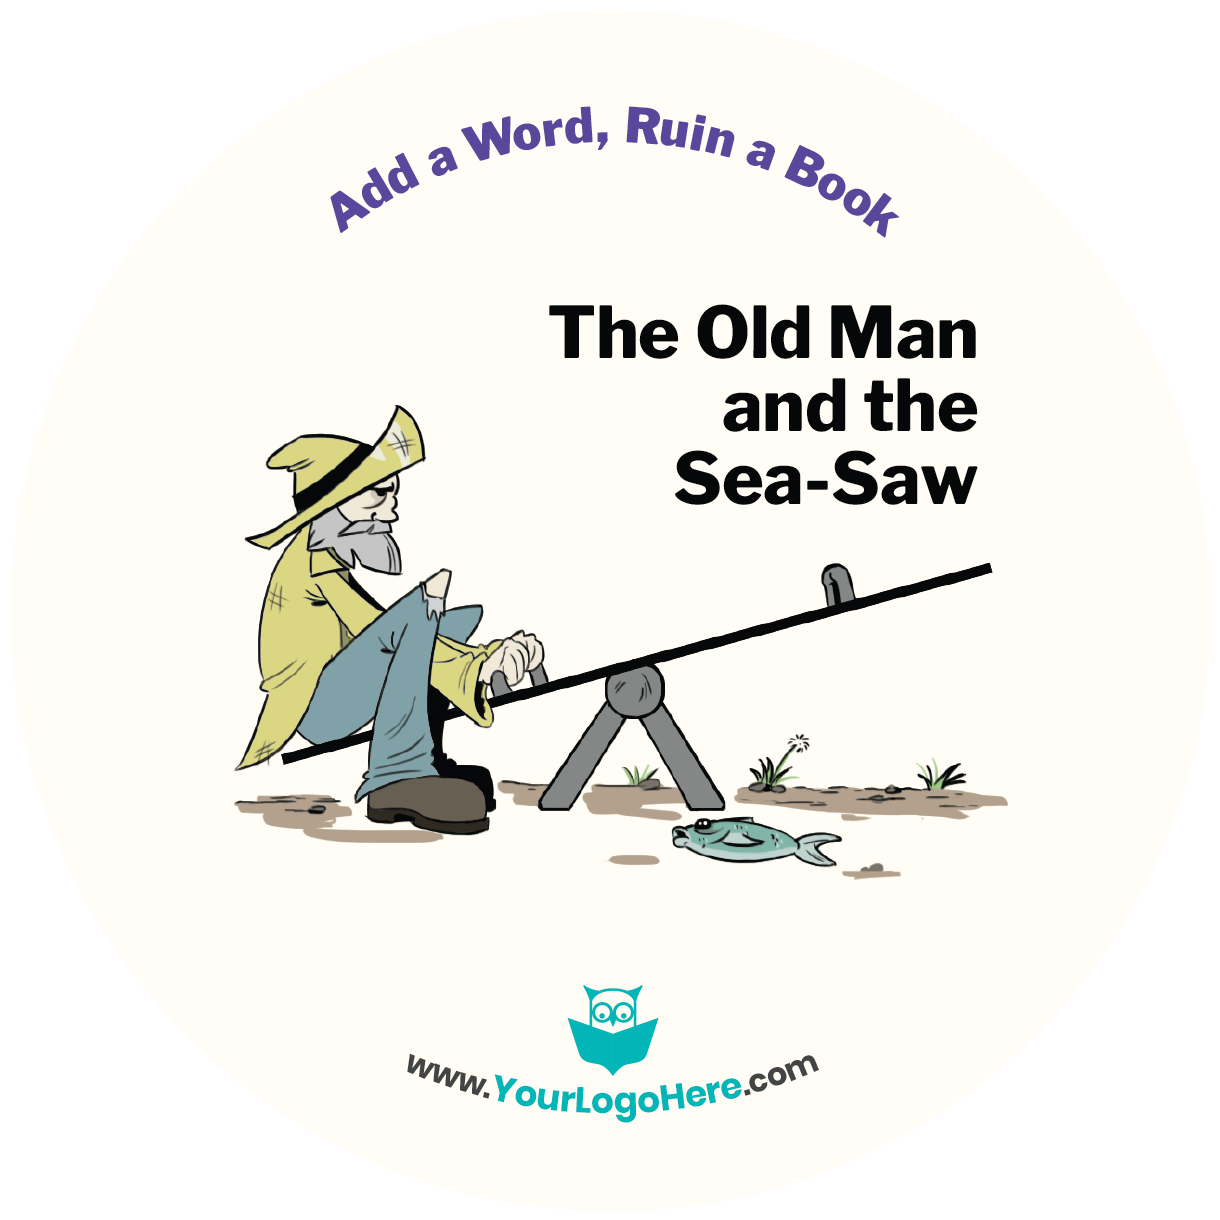 The Old Man and the Sea-Saw